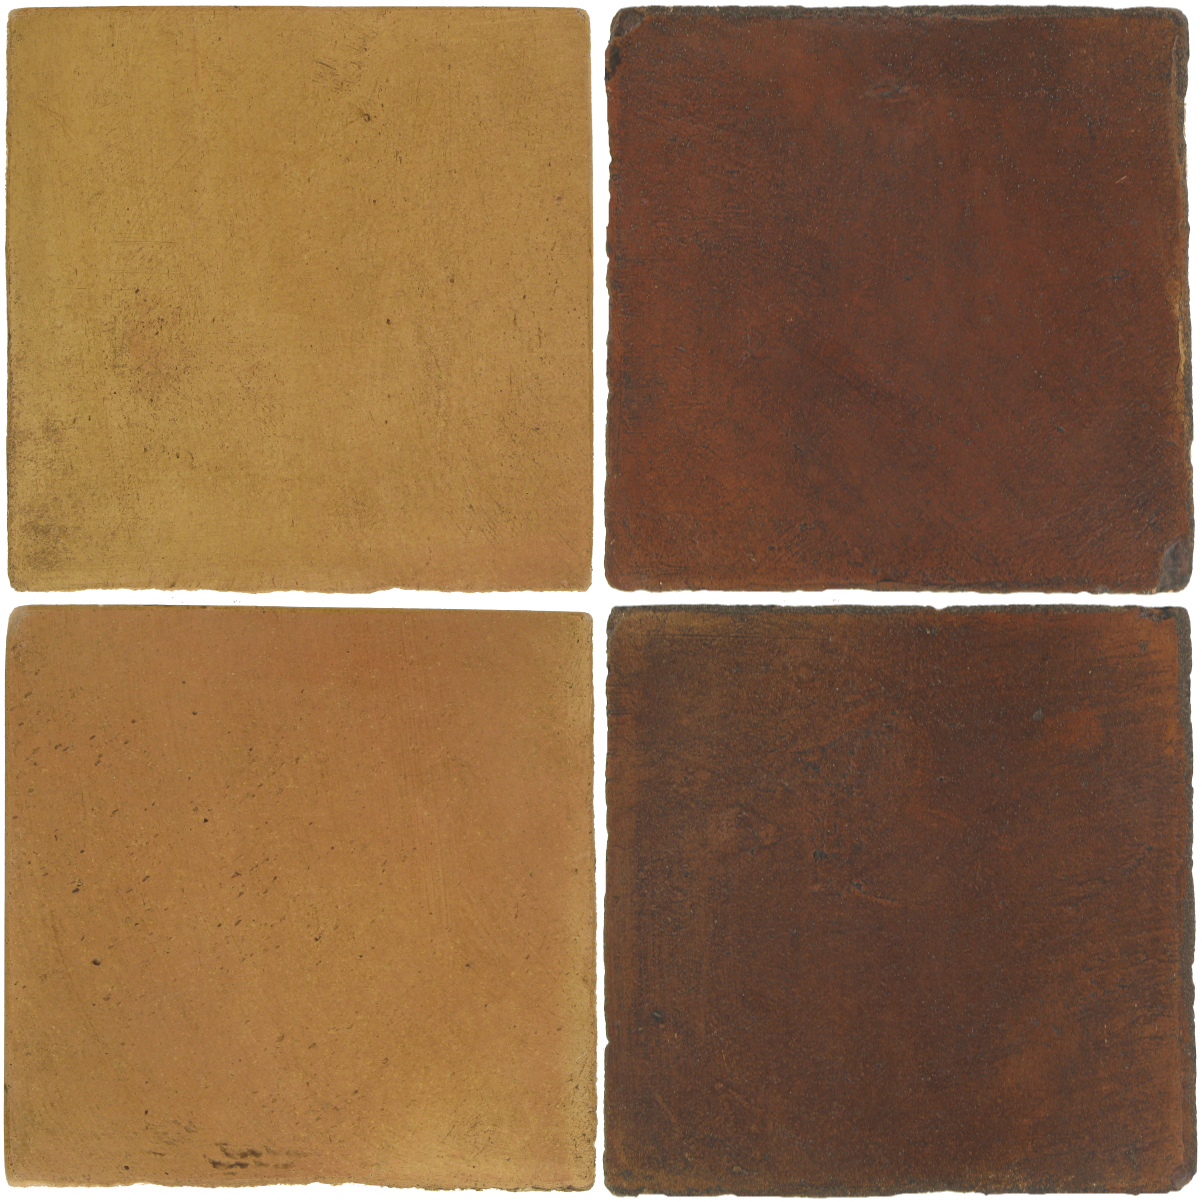 Pedralbes Antique Terracotta  2 Color Combinations  OHS-PSSW Siena Wheat + OHS-PSOW Old World